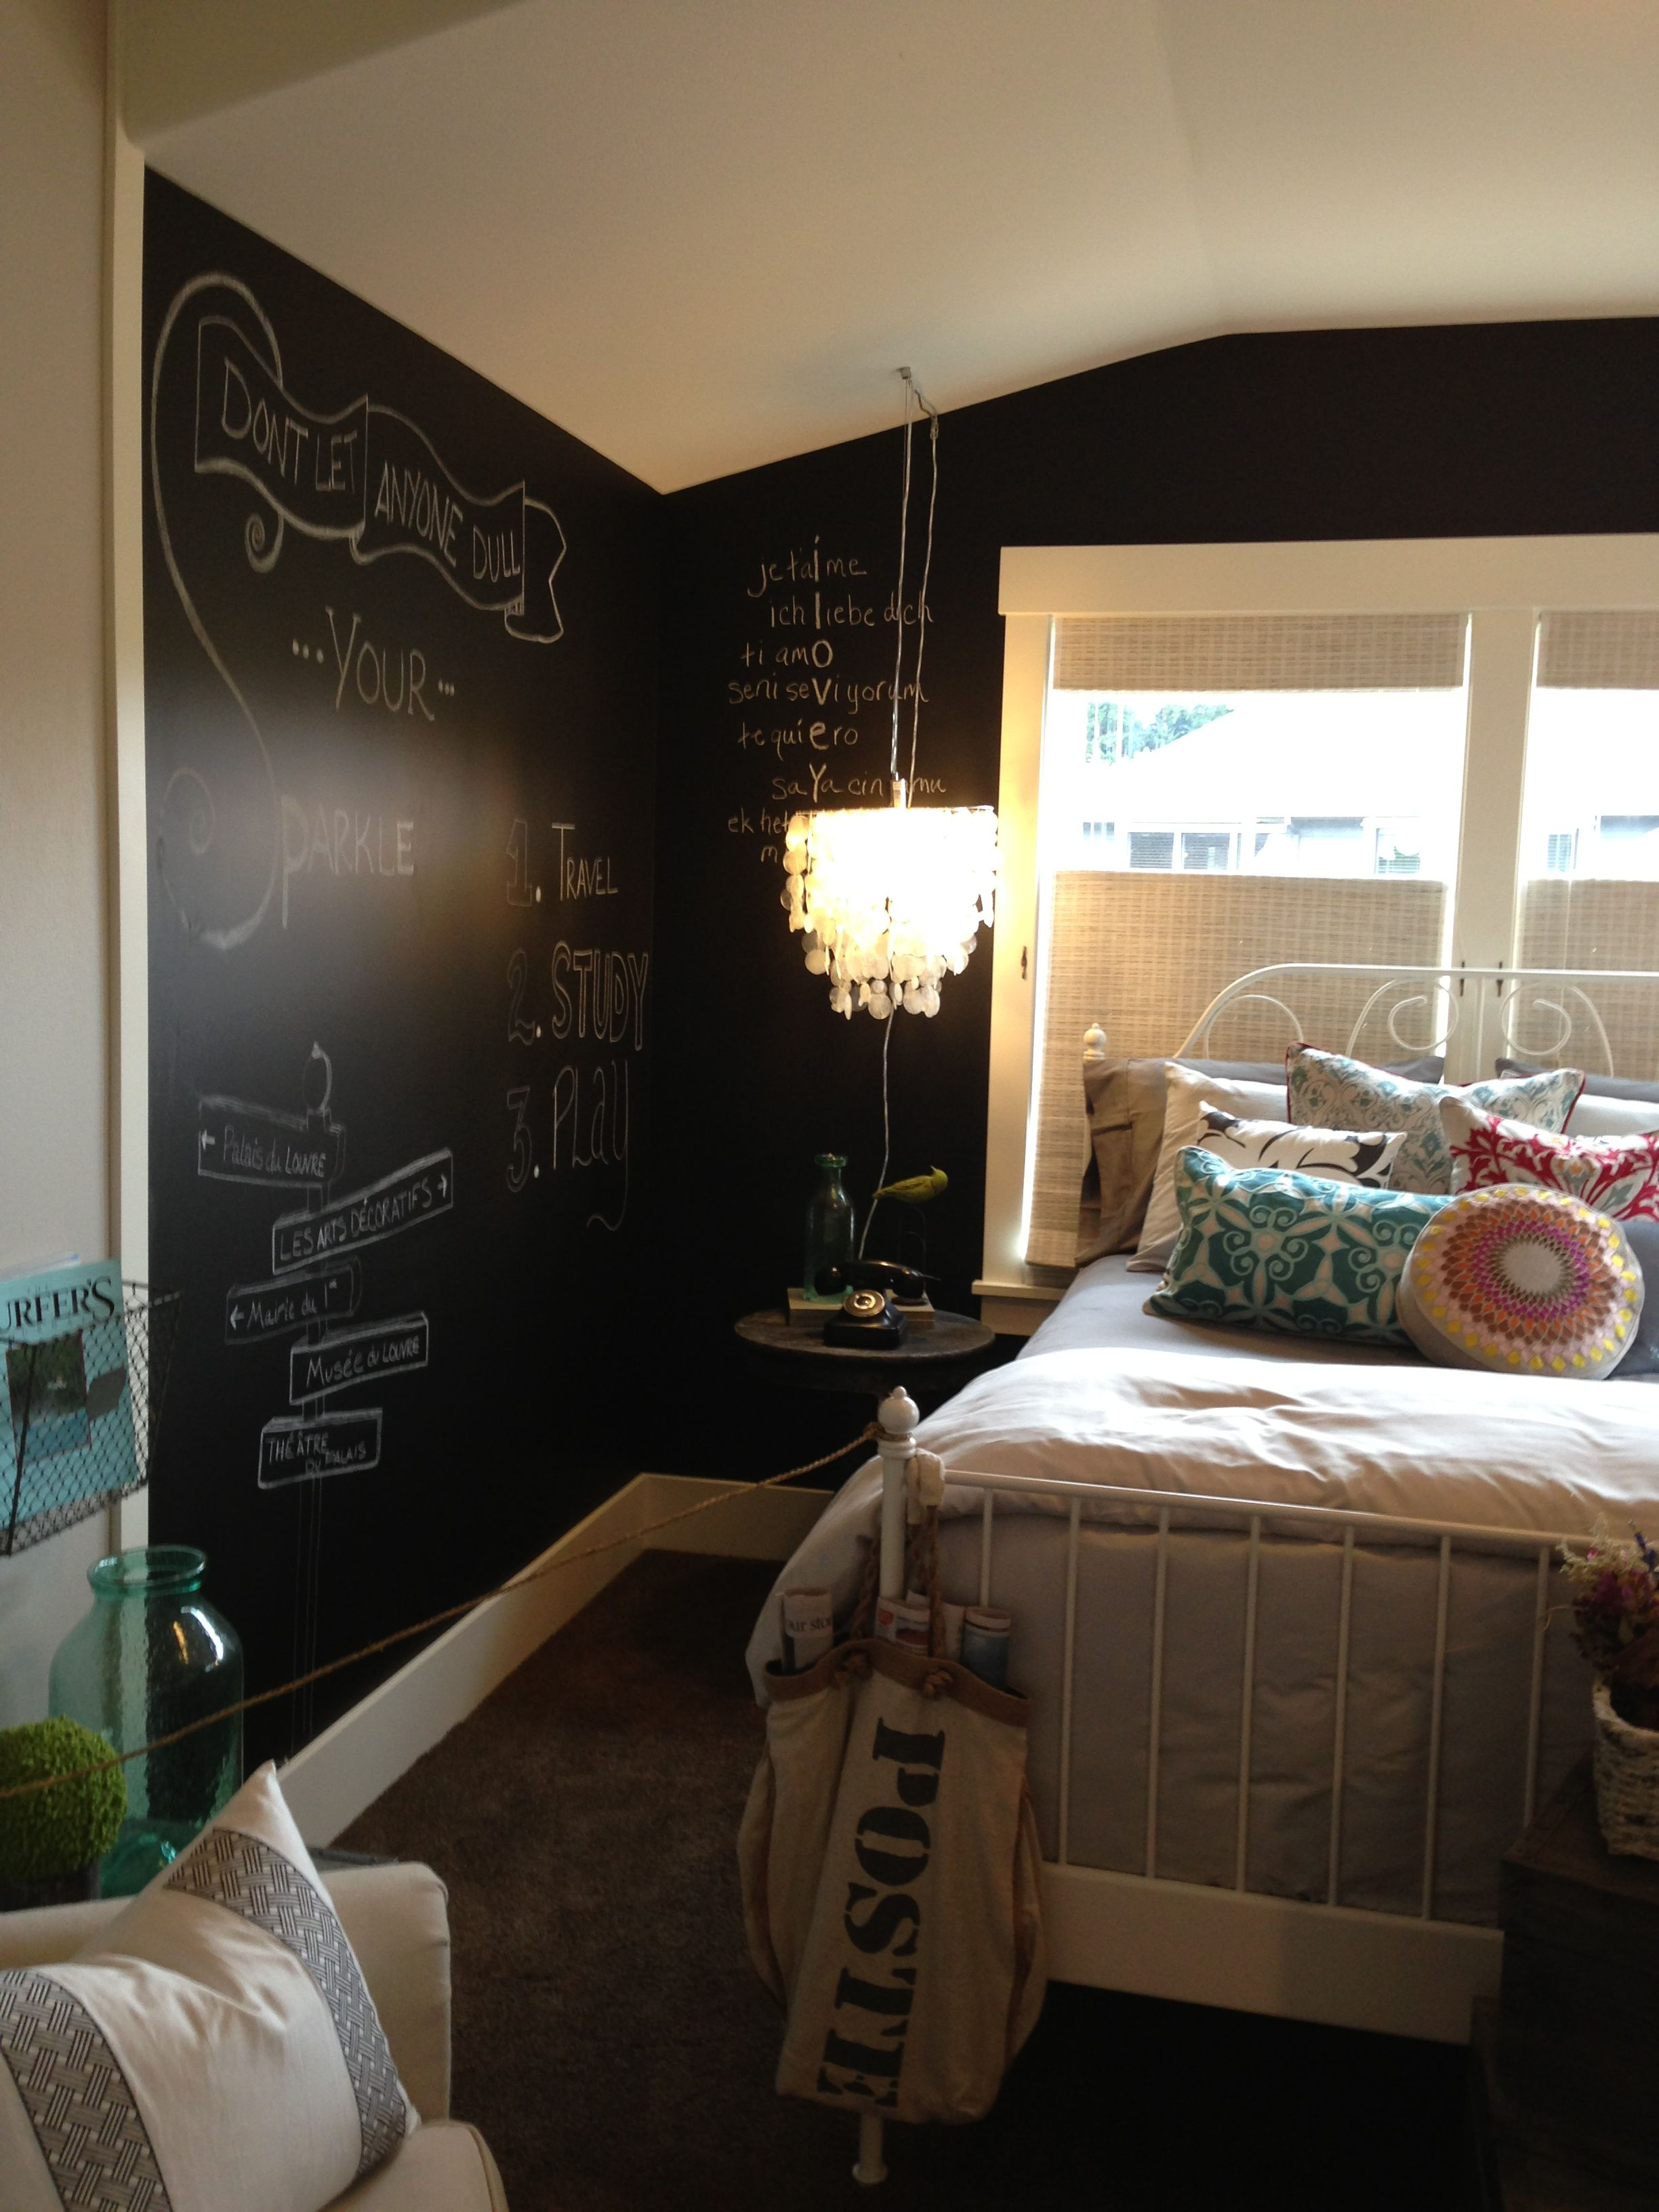 Merveilleux Paint One Wall, Or All Of Them, With Chalkboard Paint. Fun Idea For A  Teenageru0027s Bedroom! I Would LOVE To Paint One Wall Of Serau0027s Room In  Chalkboard.